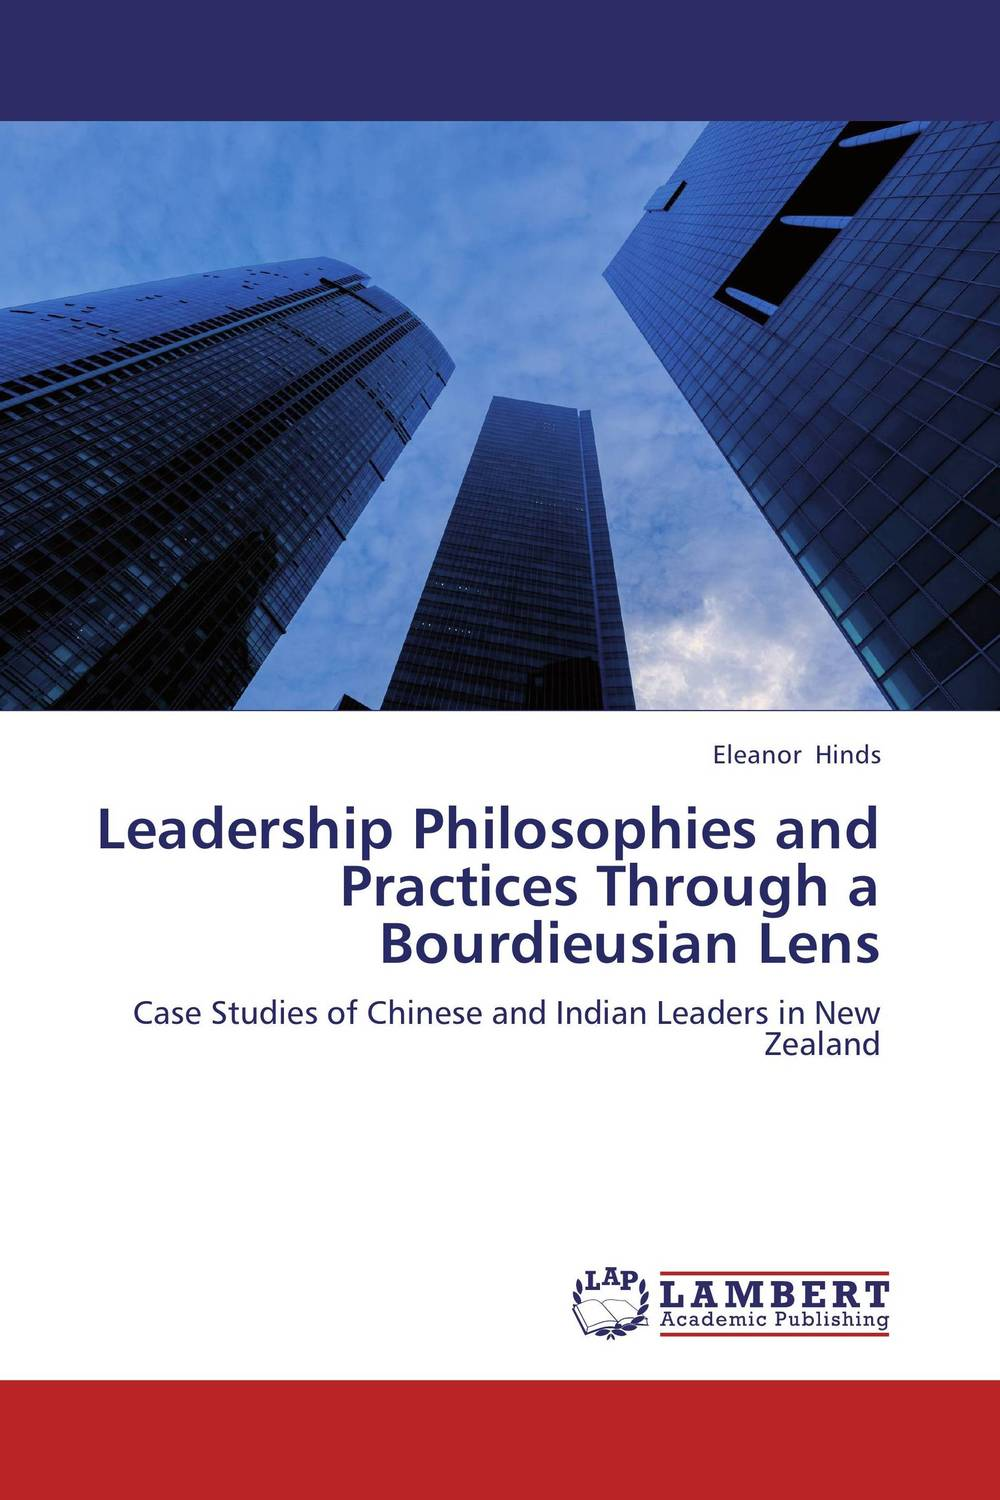 Leadership Philosophies and Practices Through a Bourdieusian Lens michael bunting extraordinary leadership in australia and new zealand the five practices that create great workplaces